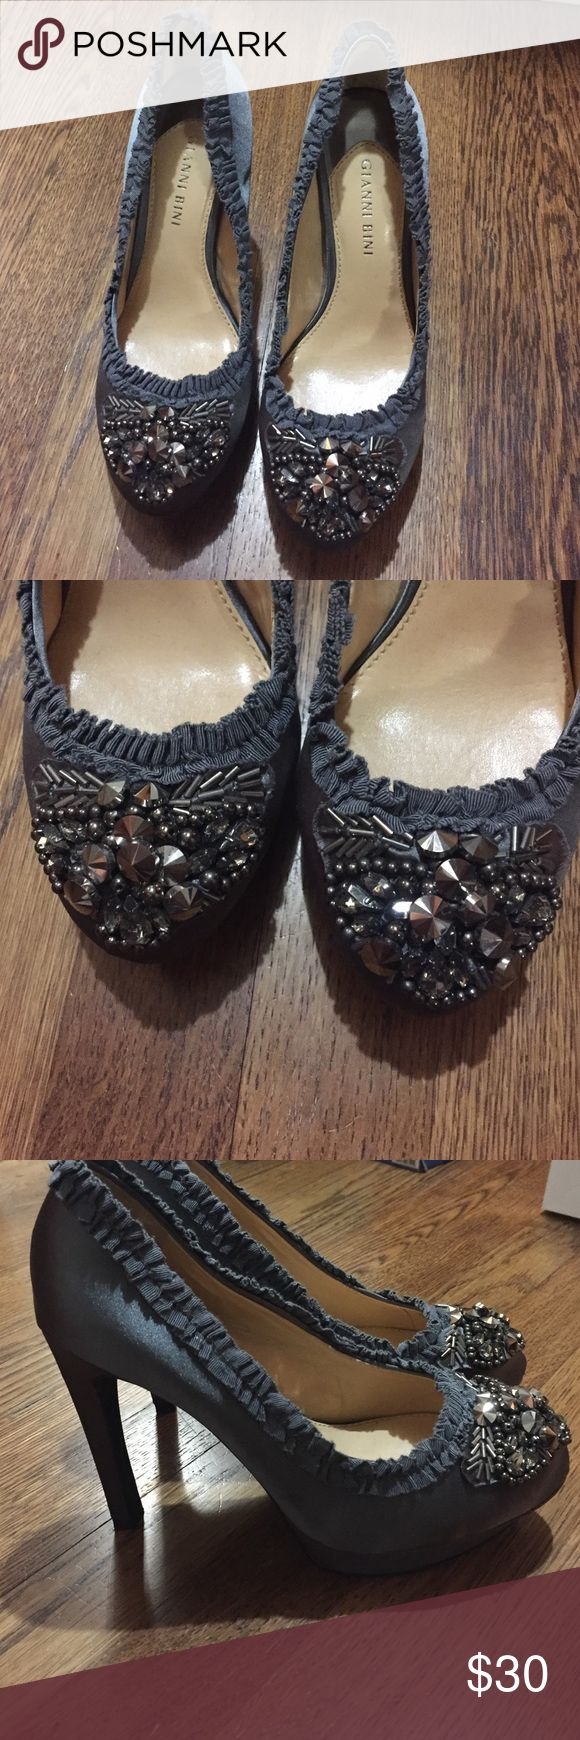 Gianni bini grey satin jeweled pumps No jewels missing! Beautiful satin grey pumps with ruched side detail. Great condition!!! Gianni Bini Shoes Heels